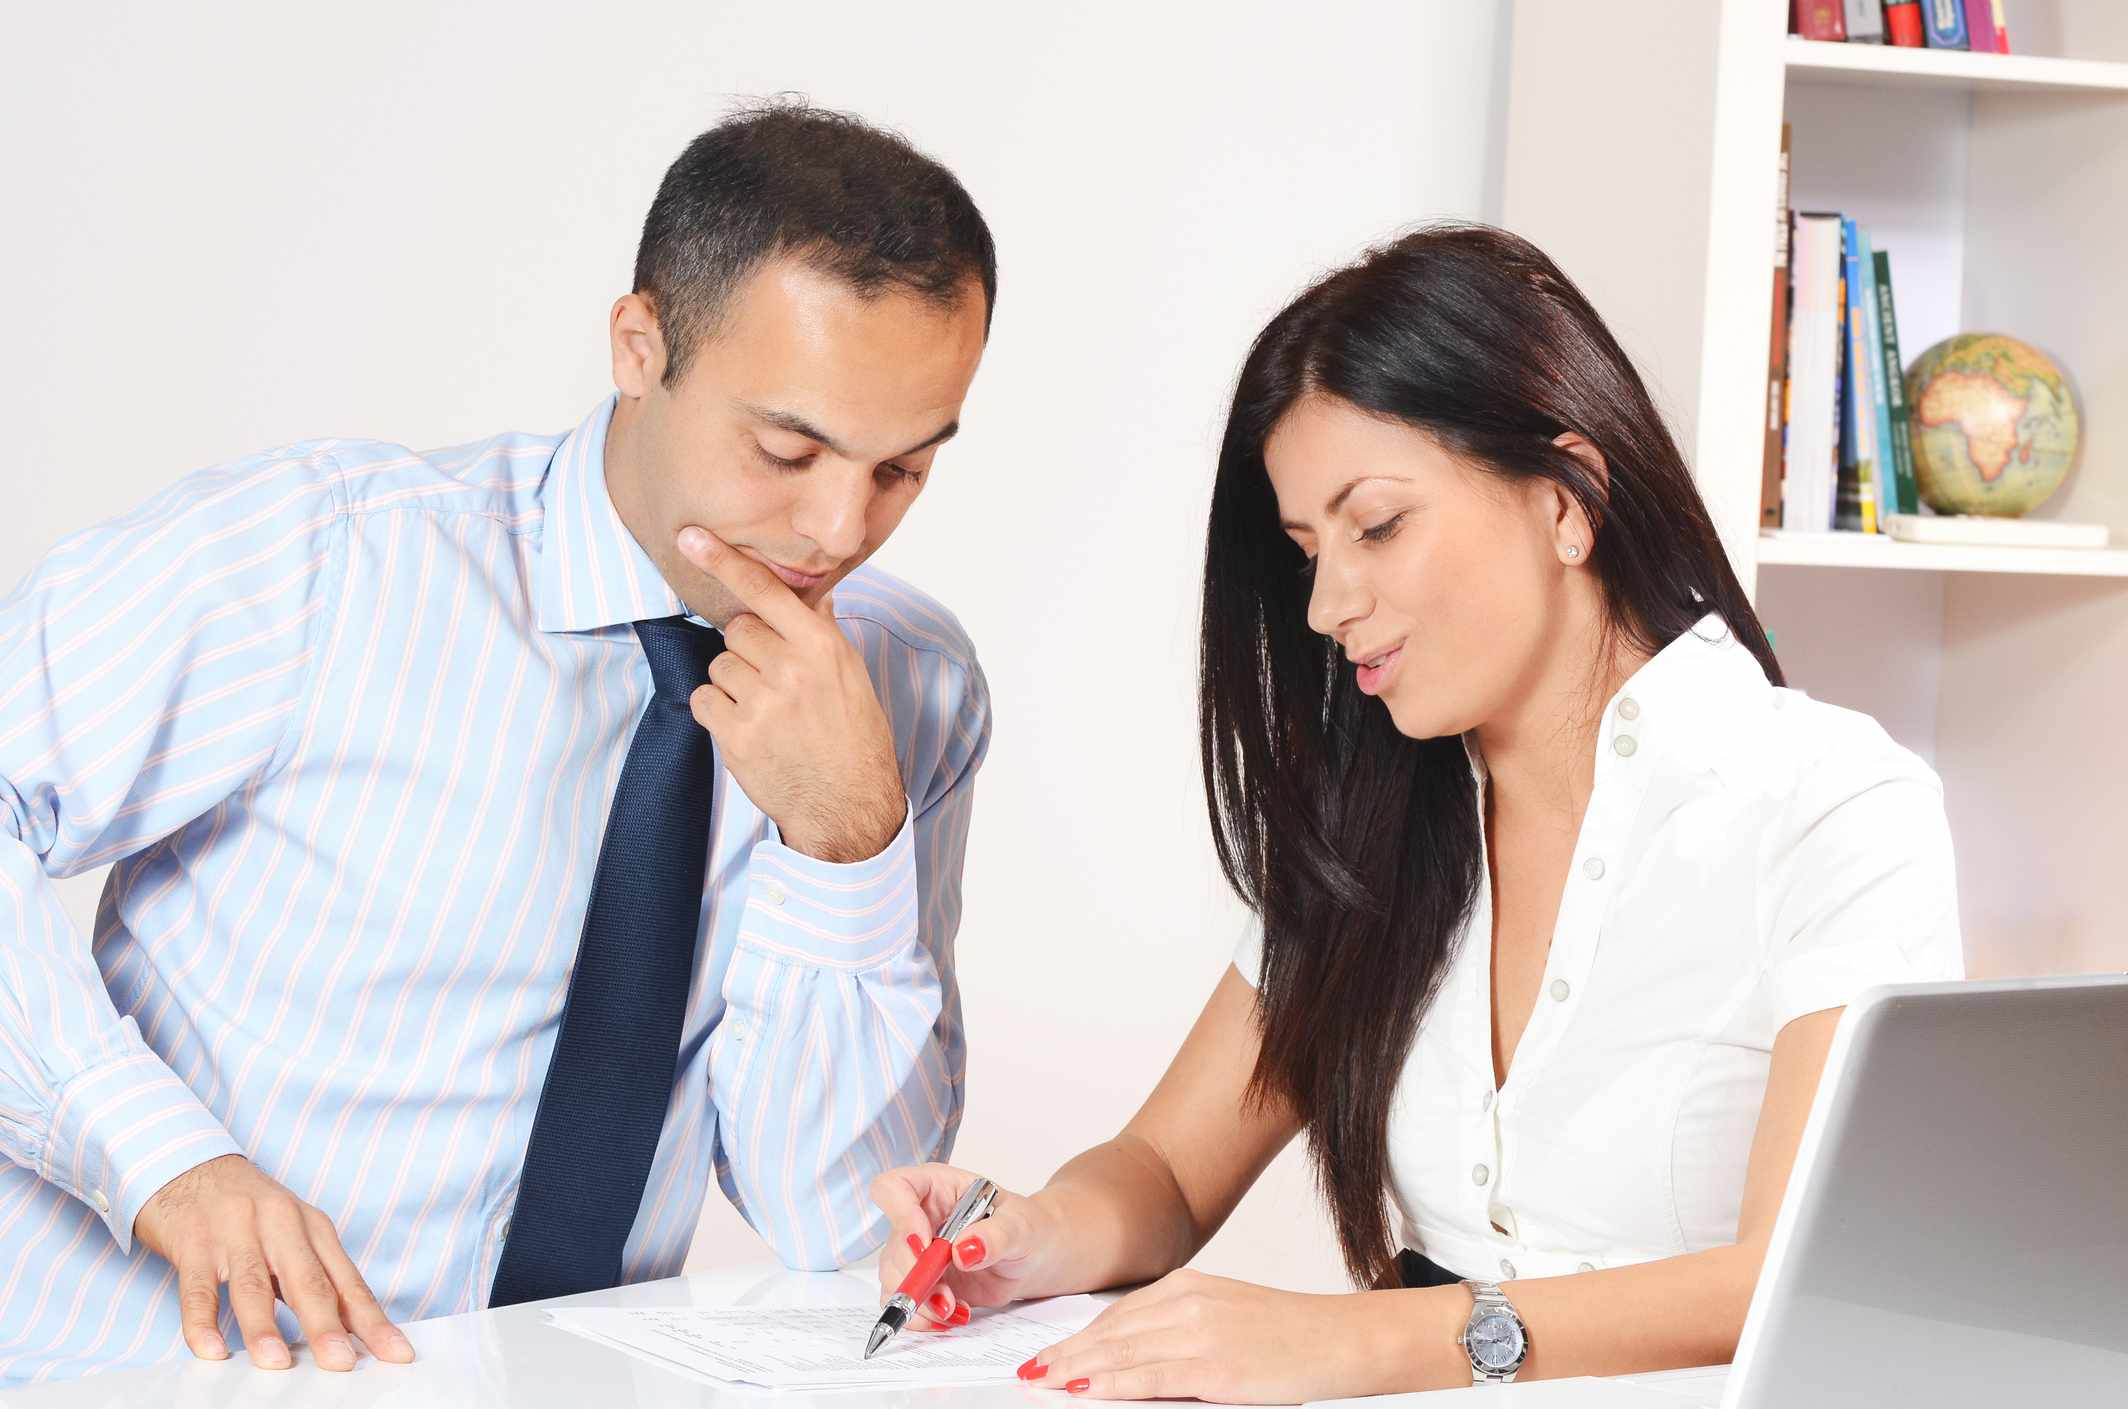 Man and woman looking over paperwork at a table